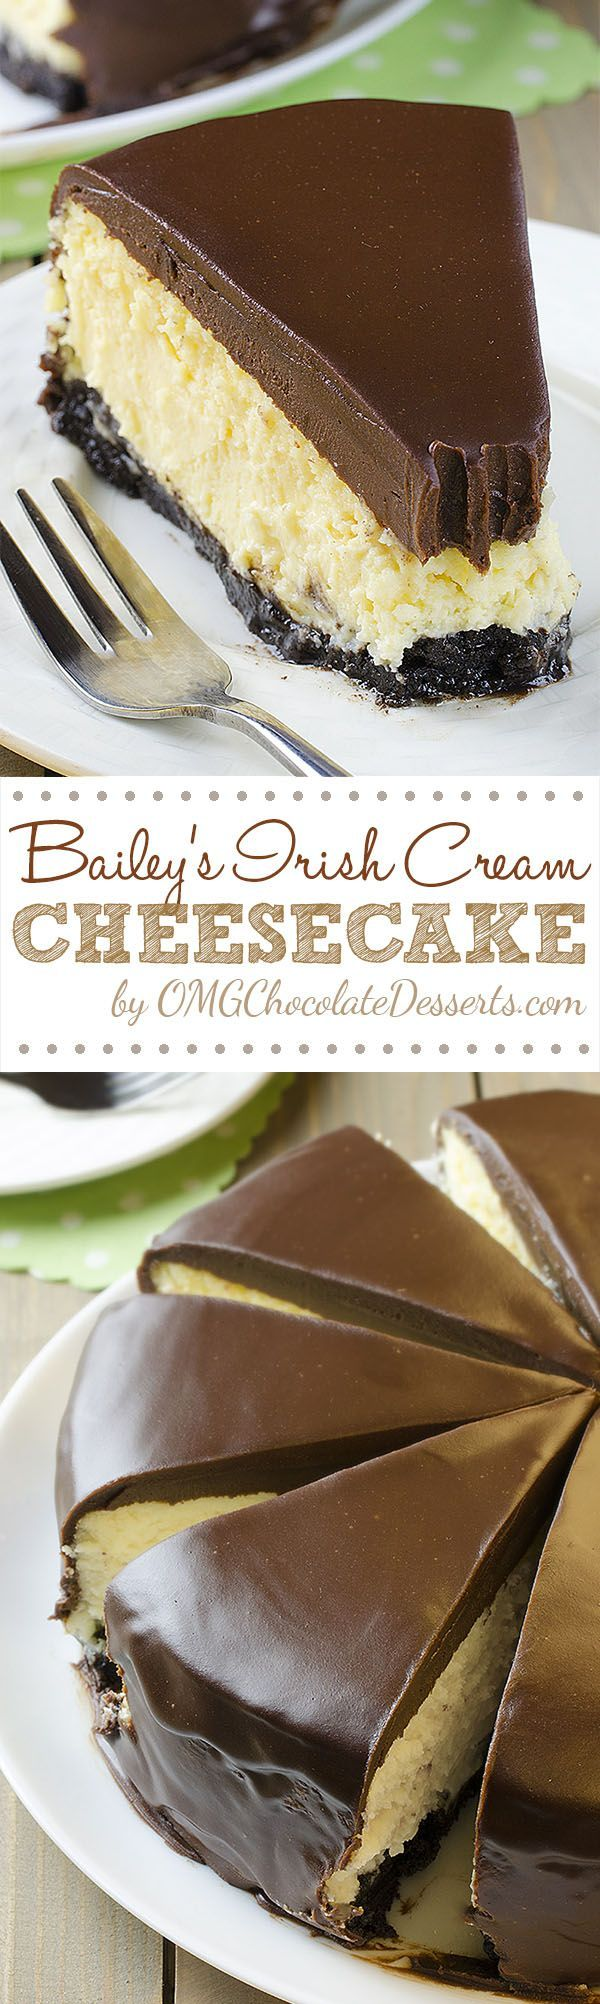 Boozy, sinful and decadent Irish Cream Cheesecake loaded with Bailey's Irish Cream, will be great St. Patrick's Day dessert. #St.Patricks #Day #dessert.